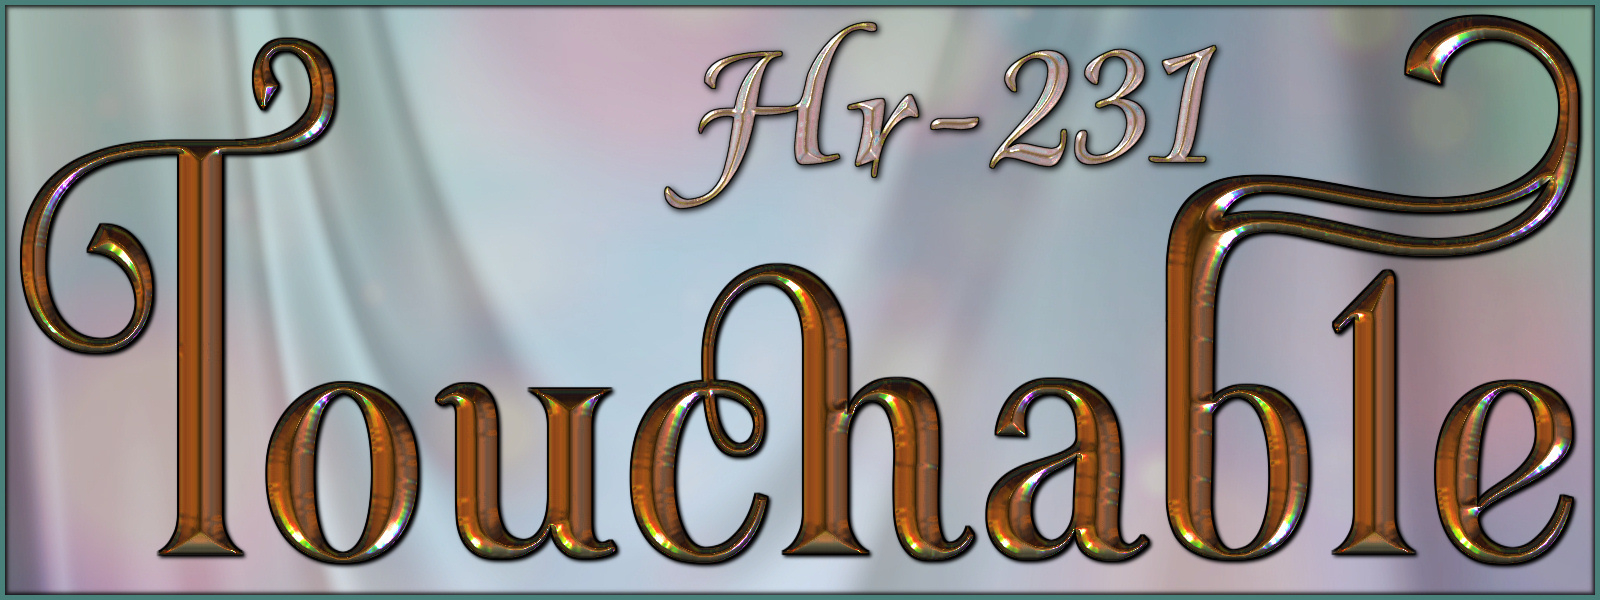 Touchable Hr-231 by -Wolfie-